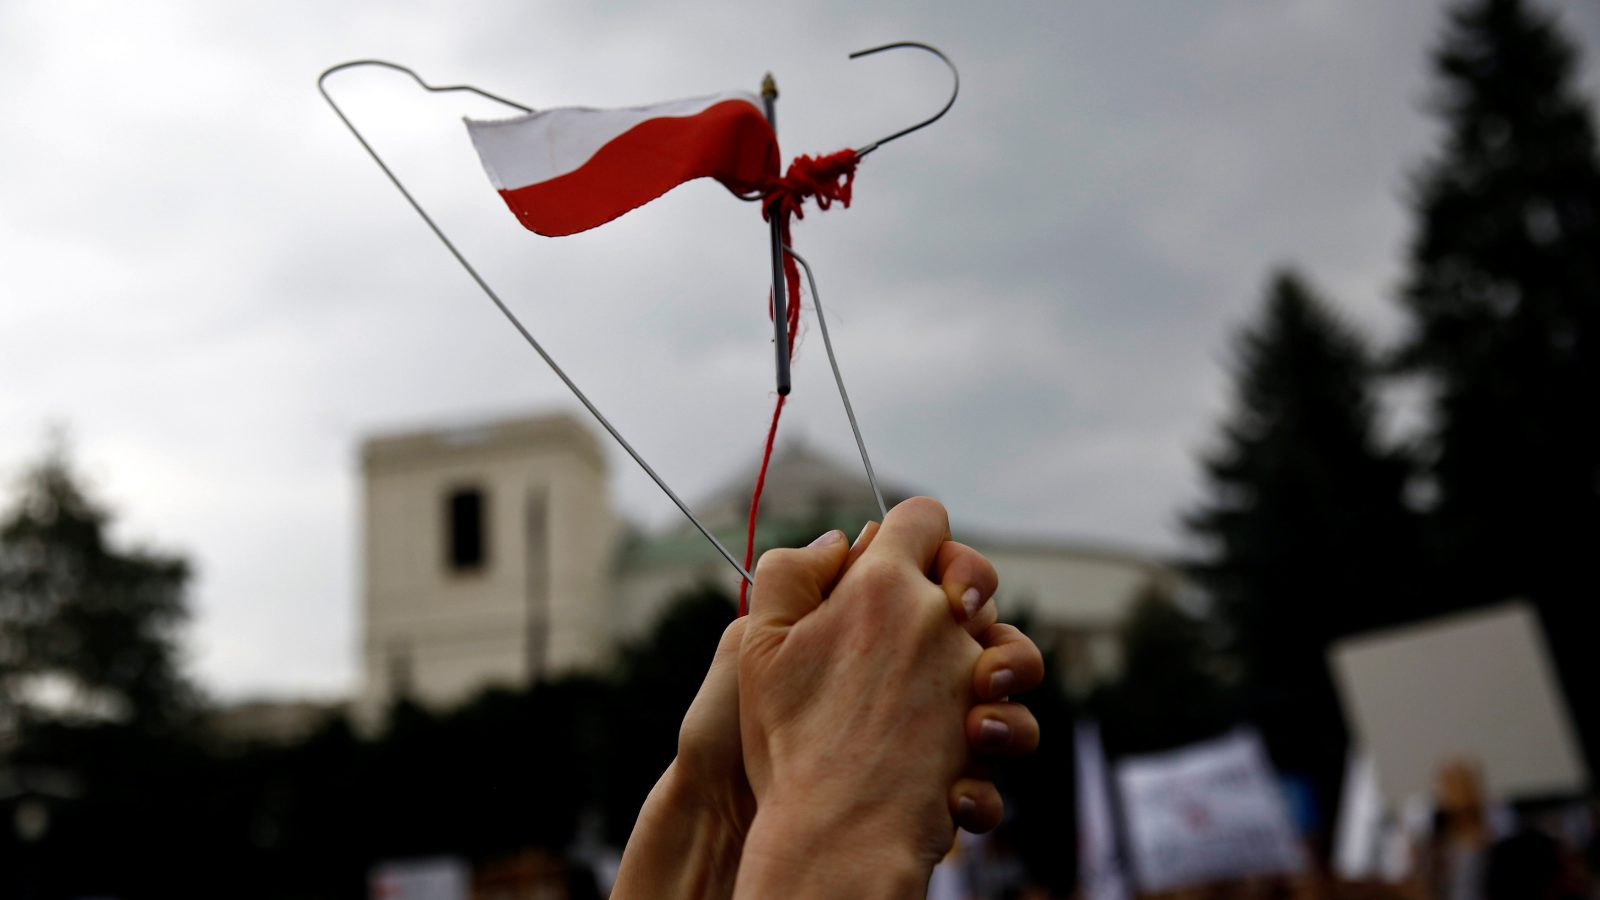 A coat hanger held up as a symbol of protest in Poland.